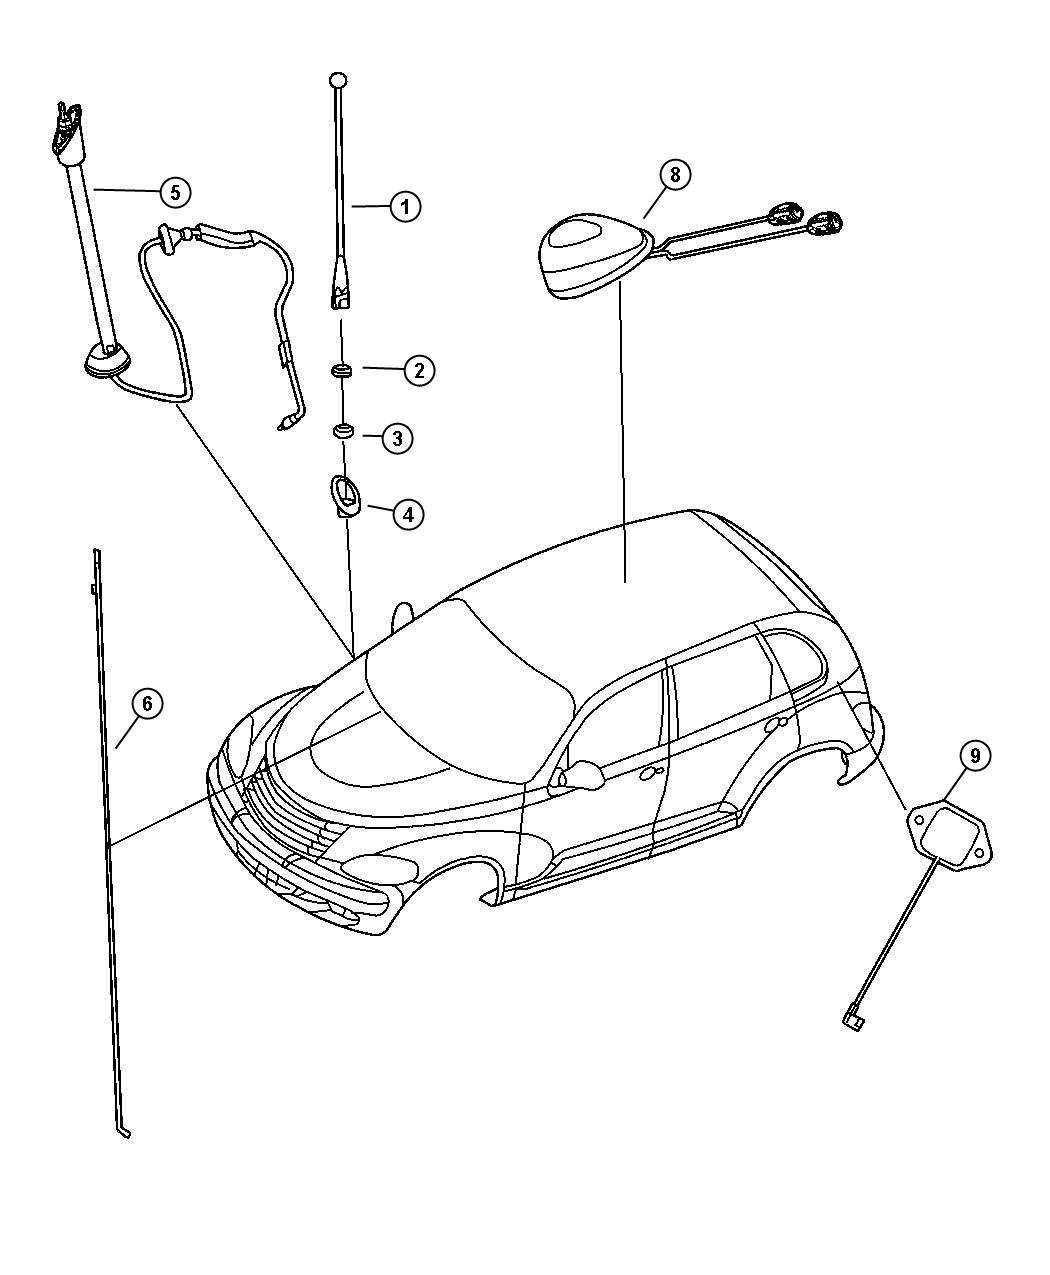 Pt Cruiser Front End Diagram Trusted Wiring 2004 Trailblazer Diagramclunk Spring Goes In The Transbolt 2001 Suspension